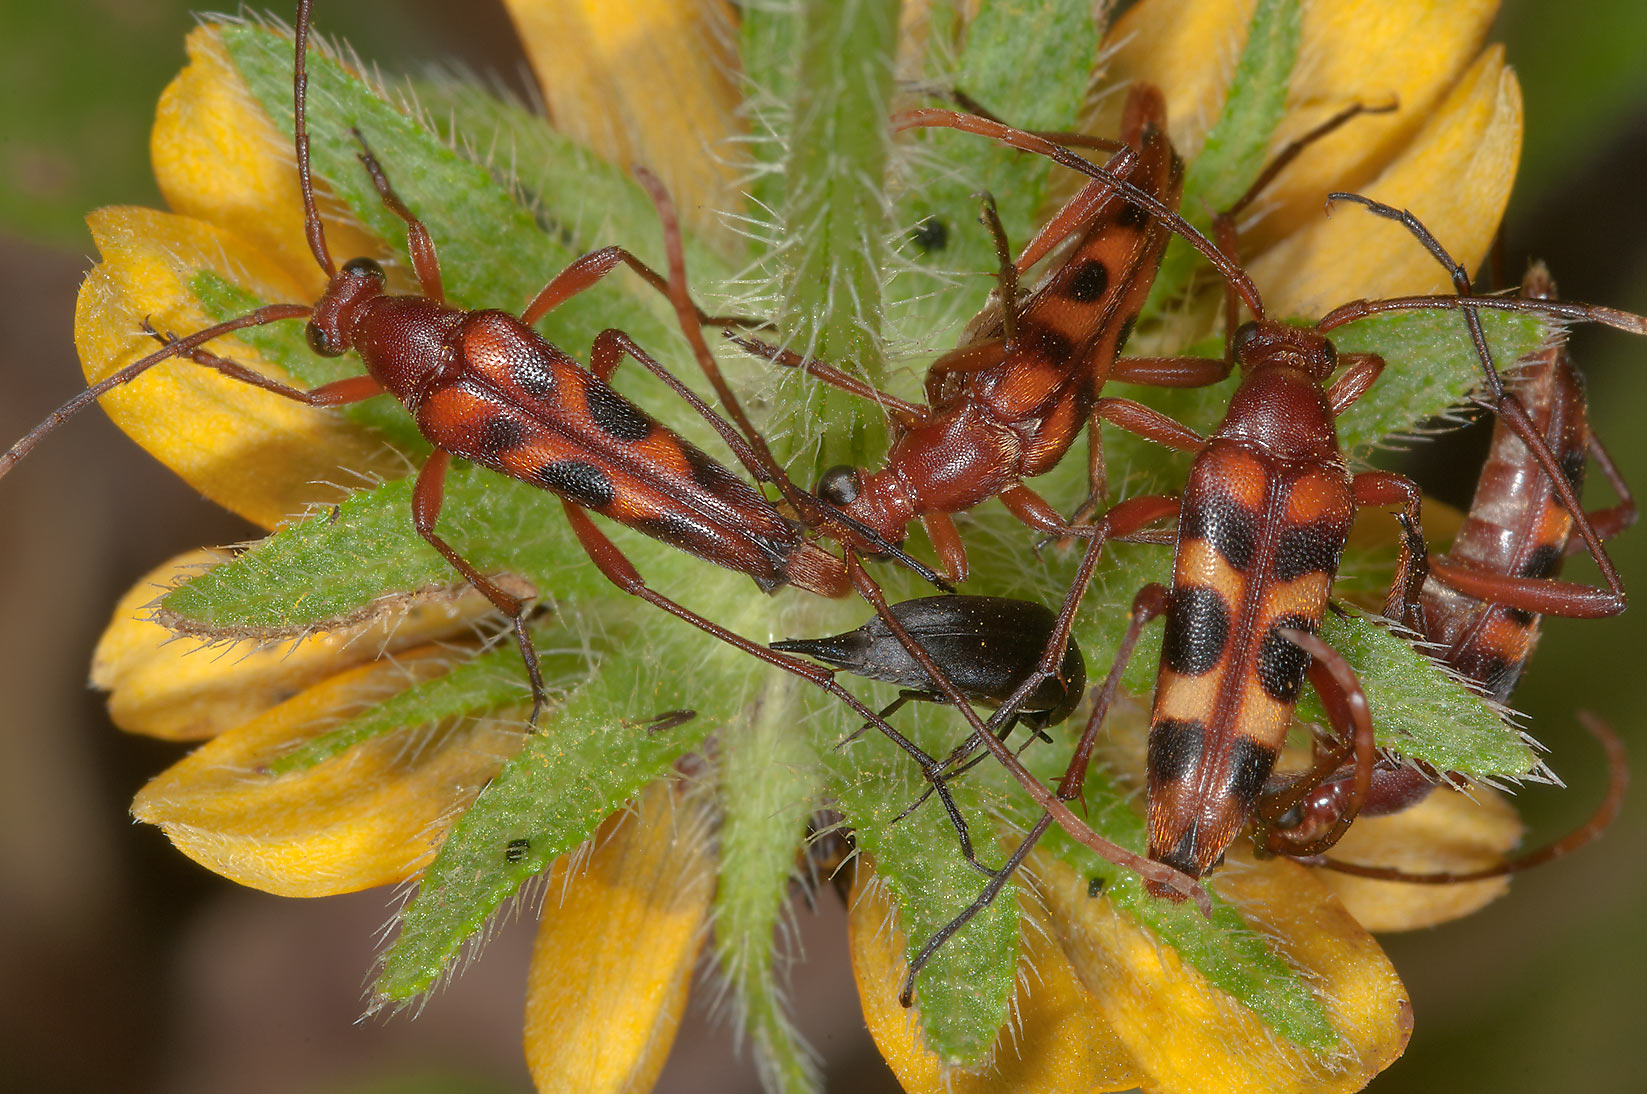 Horn beetles sleeping on coreopsis at morning in Lick Creek Park. College Station, Texas